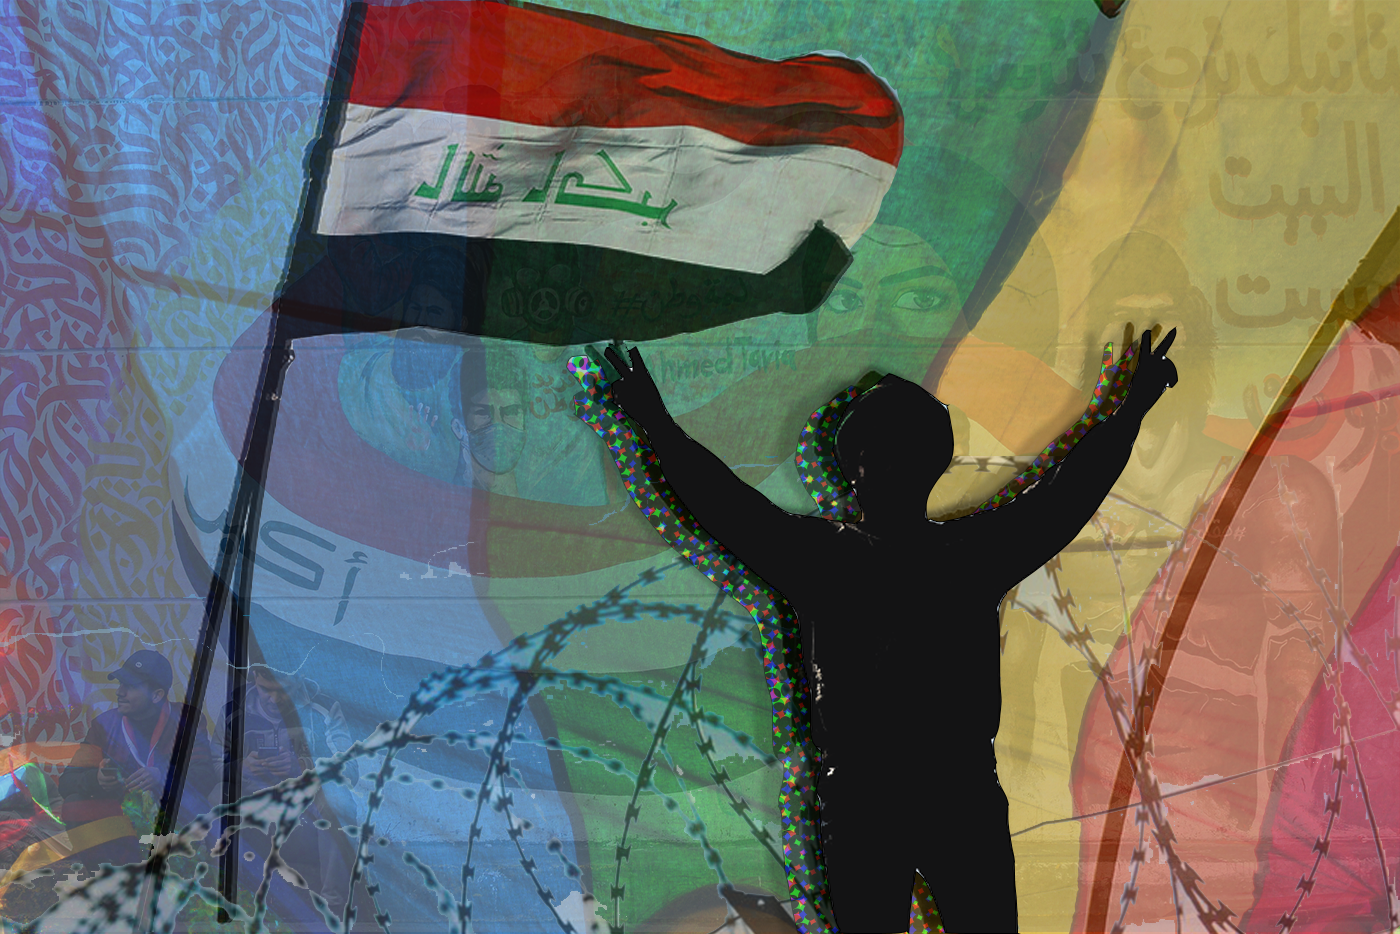 LGBTQ activists in Iraq will 'not hesitate' to keep on protesting despite threats